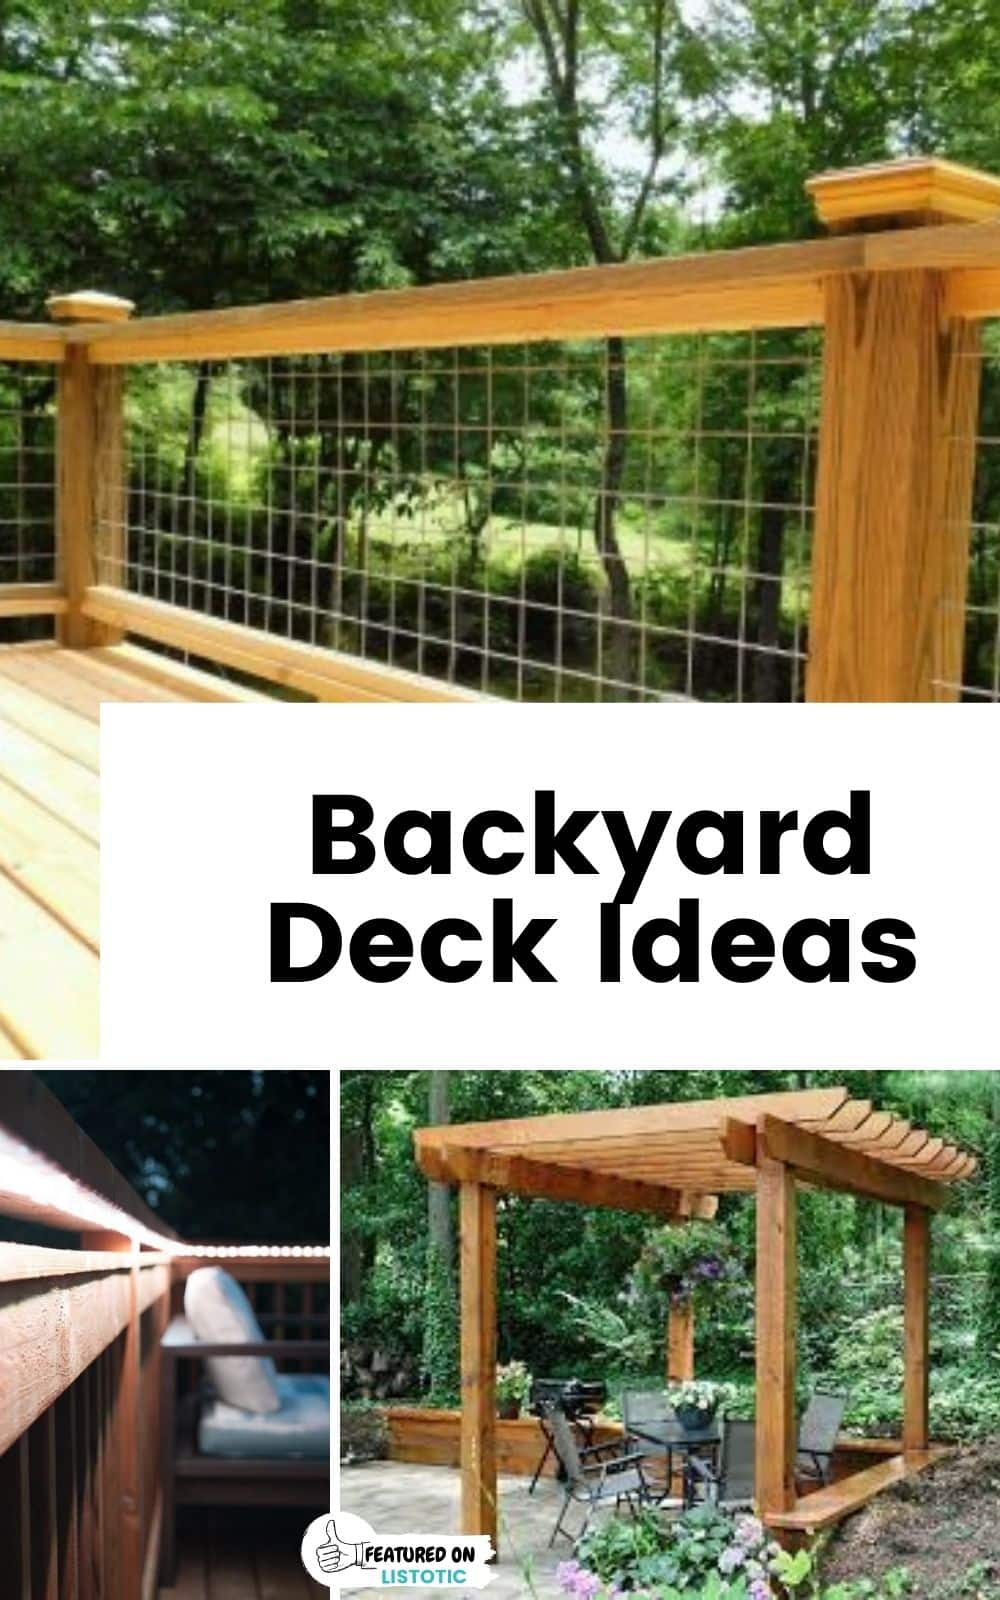 ideas for deck privacy screen and deck railing ideas